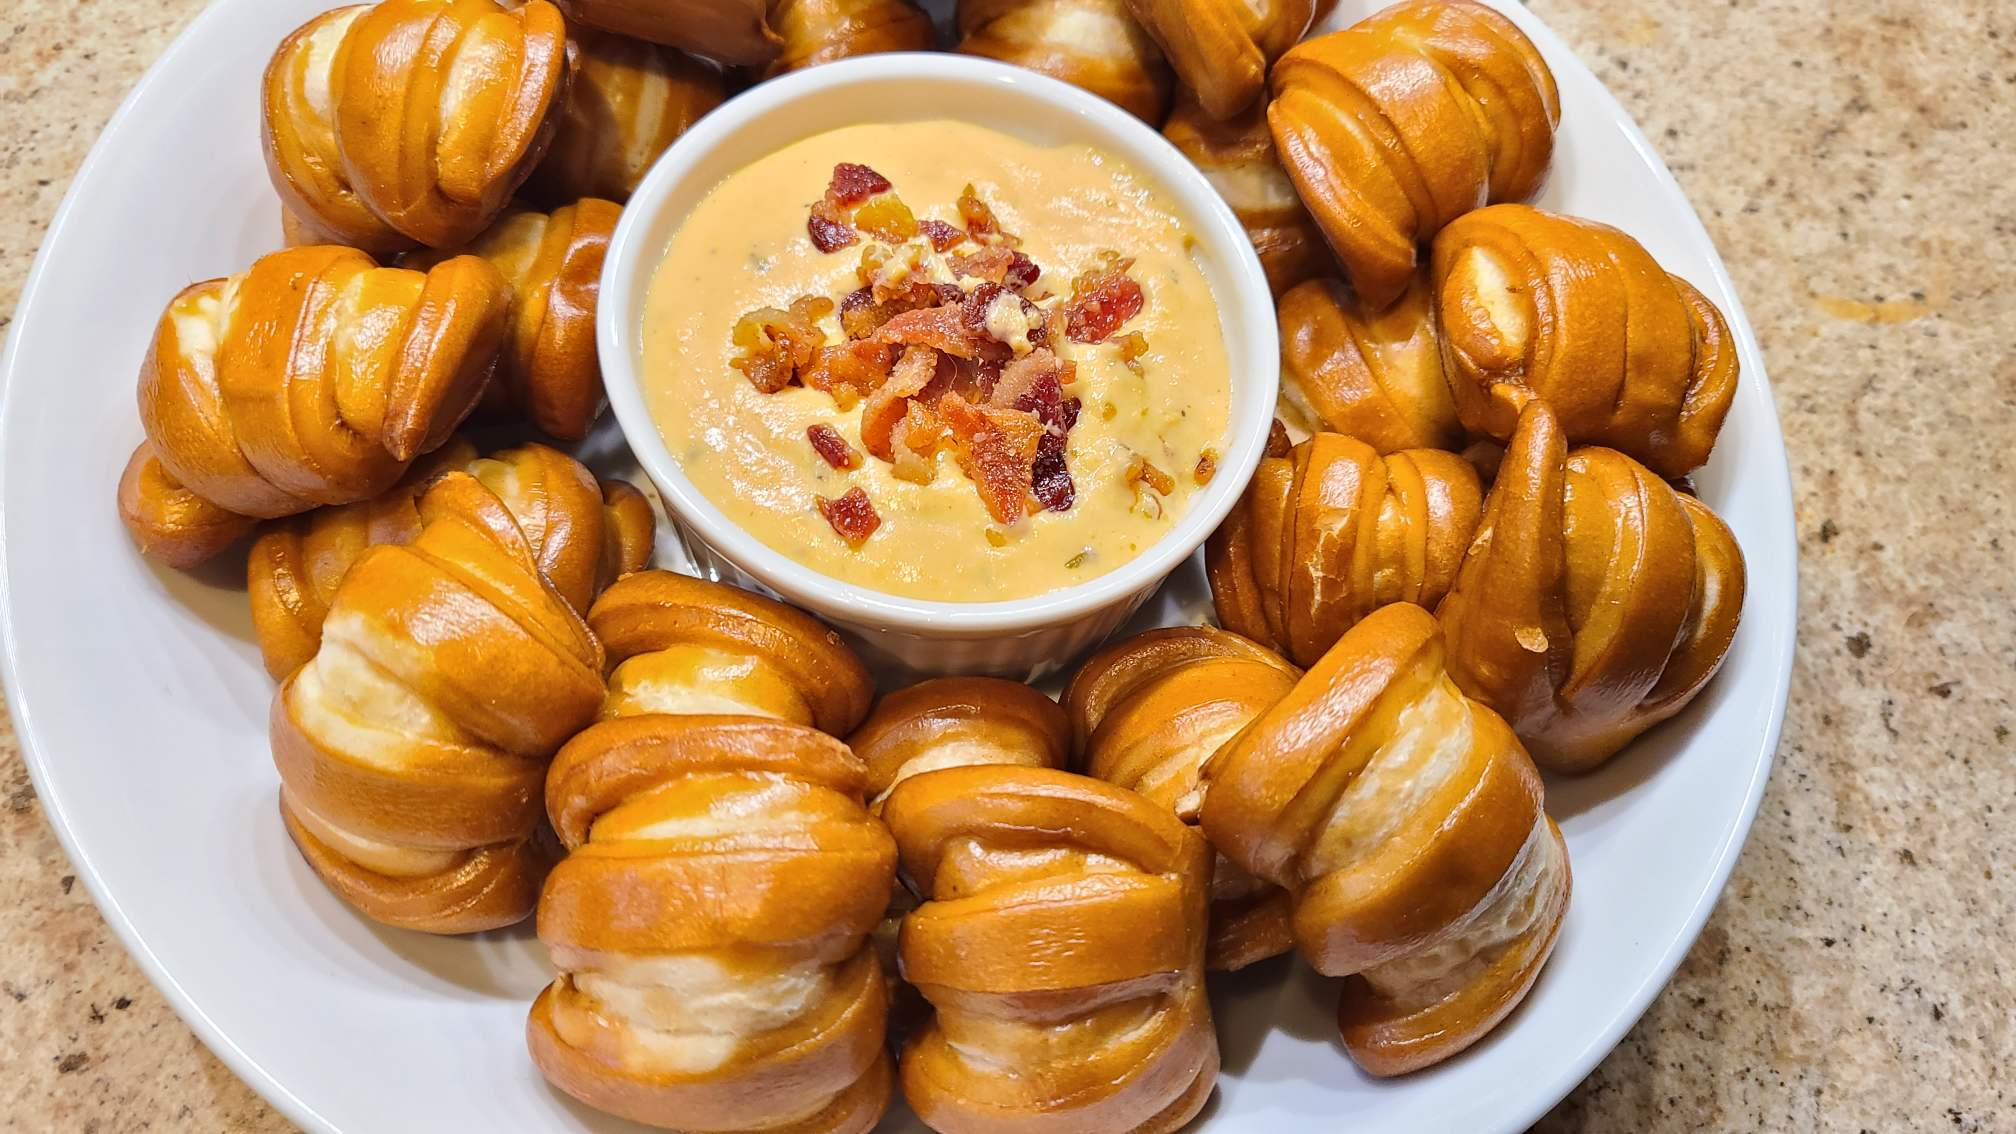 Beer Cheese with pretzels